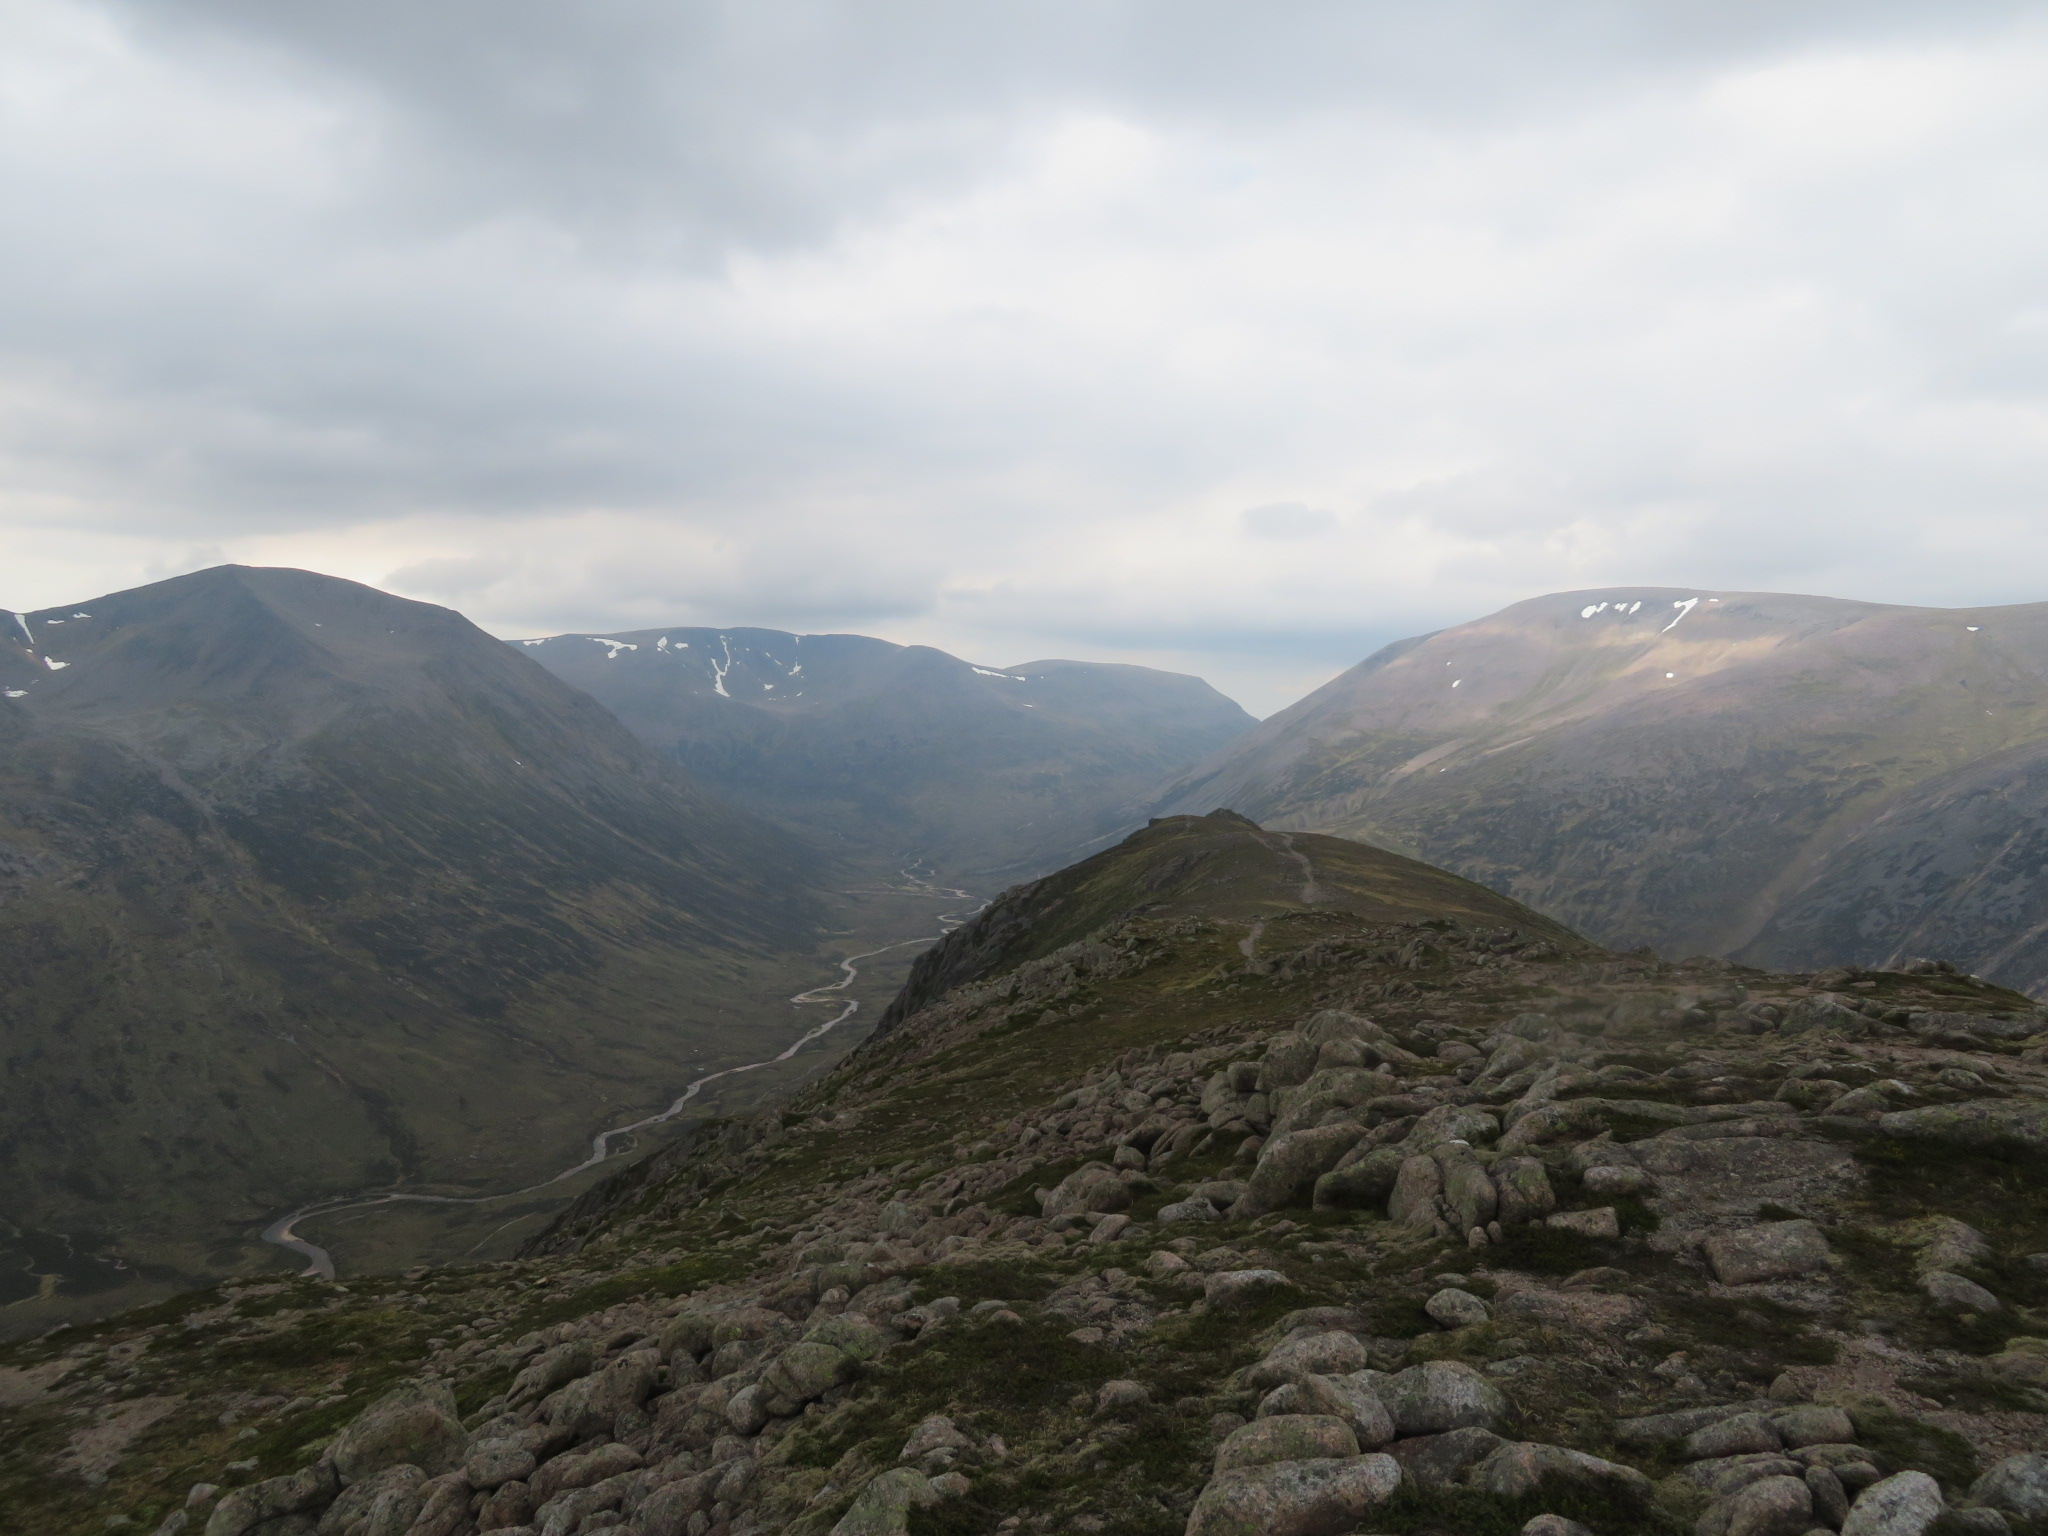 Cairn Toul, Braeriach, Bern Macdui and  upper Dee towards Lairig Ghru,  from Carn A Mhaim - © William Mackesy